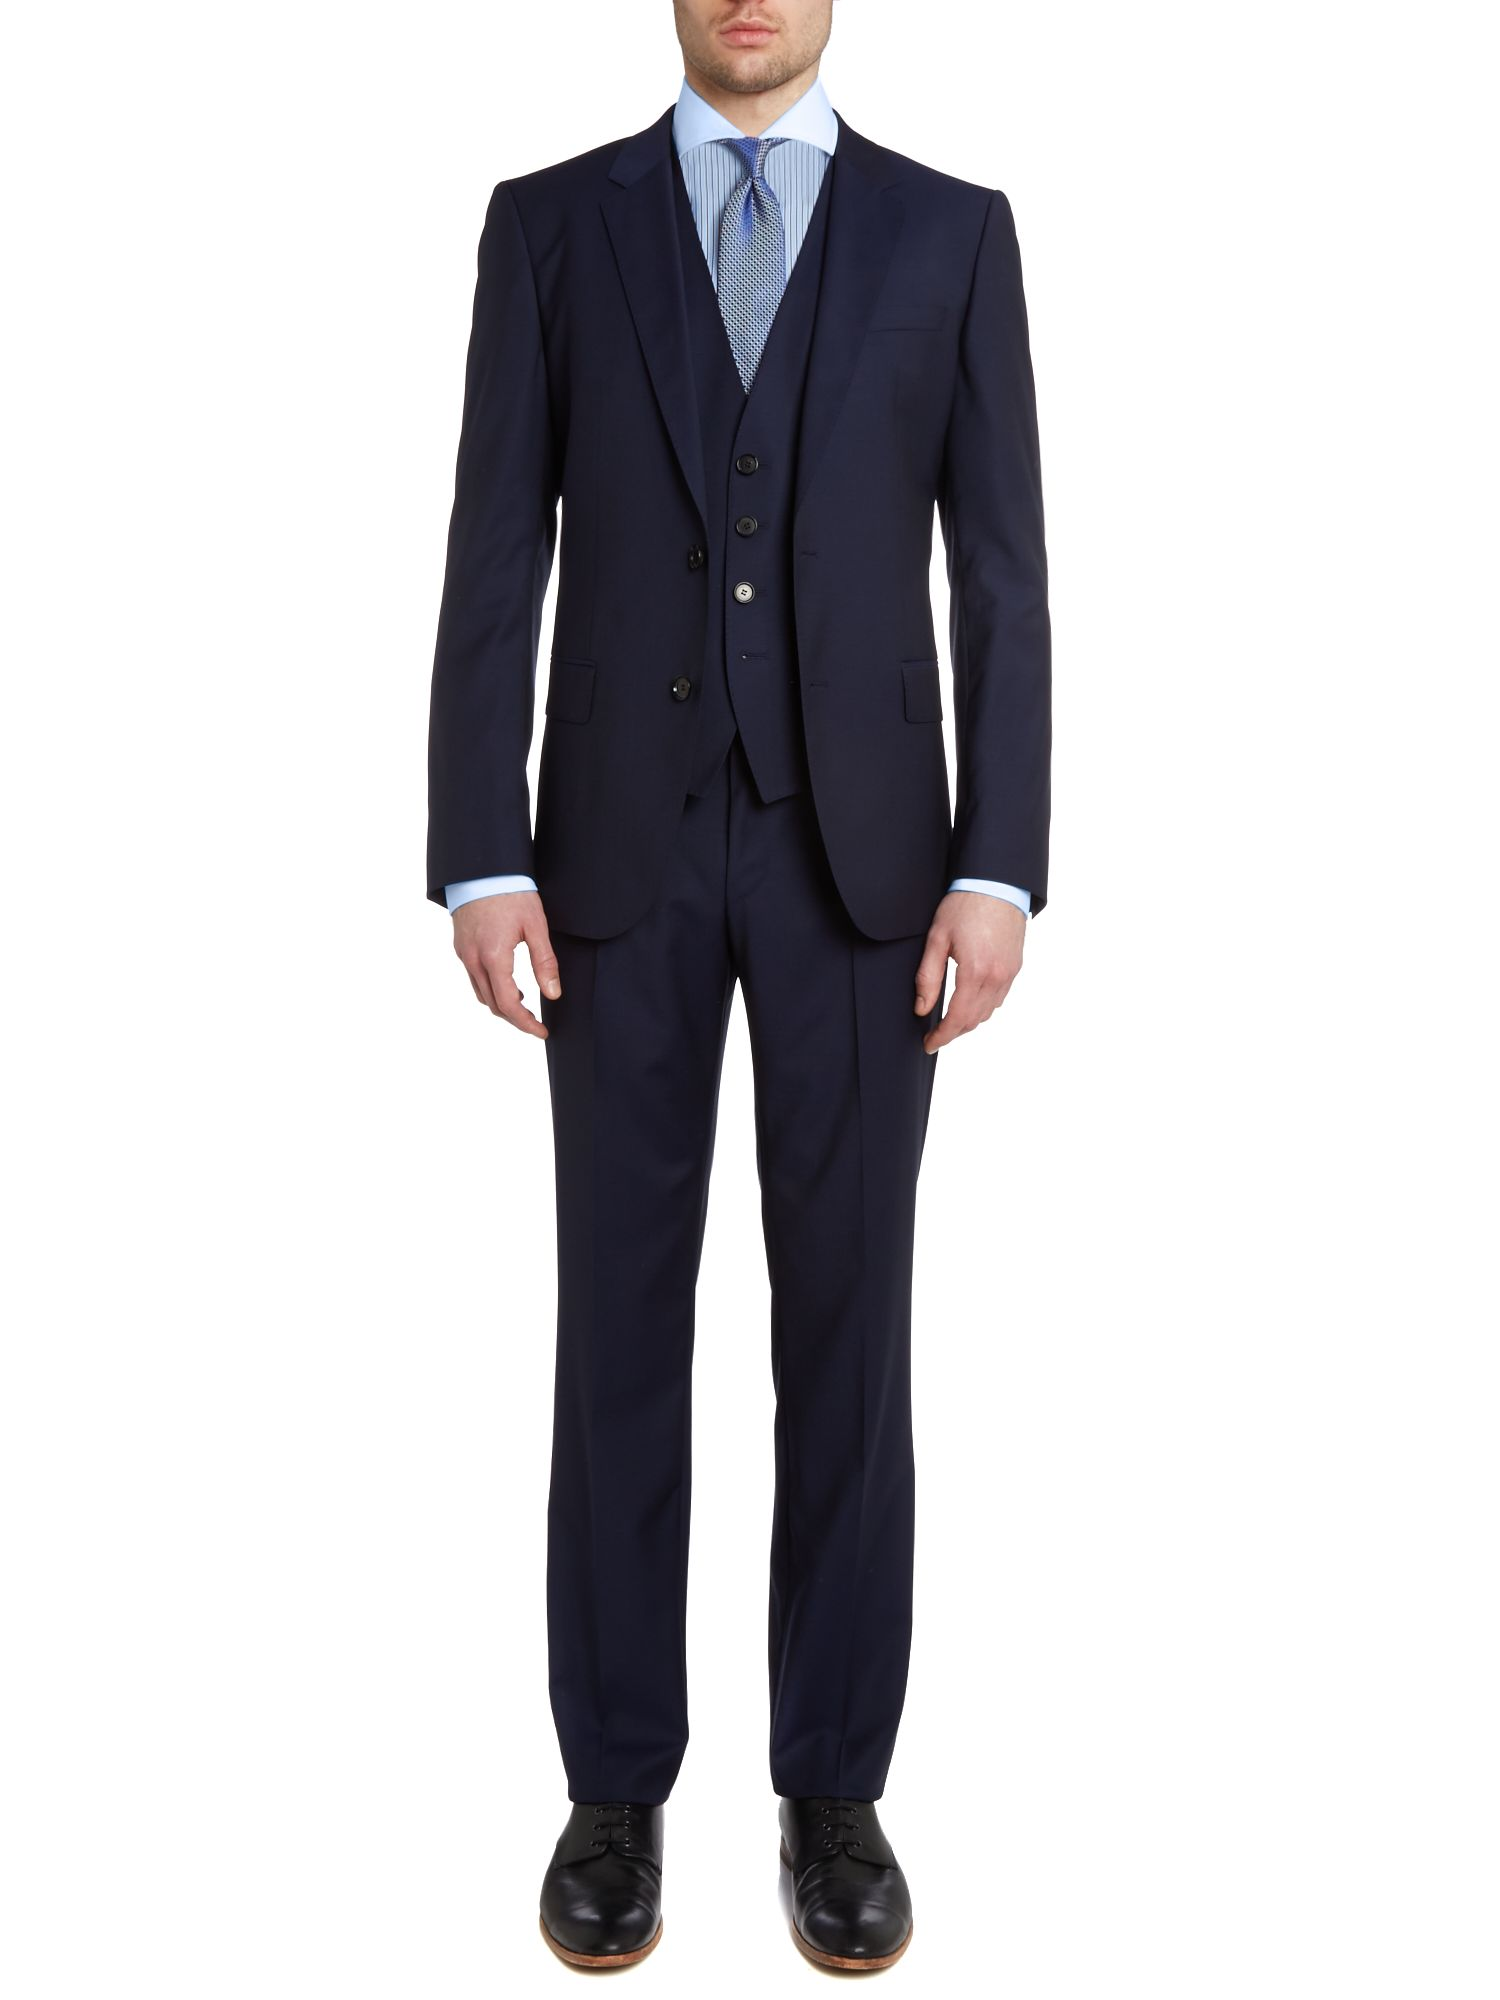 Huge/Genius three piece solid slim fit suit